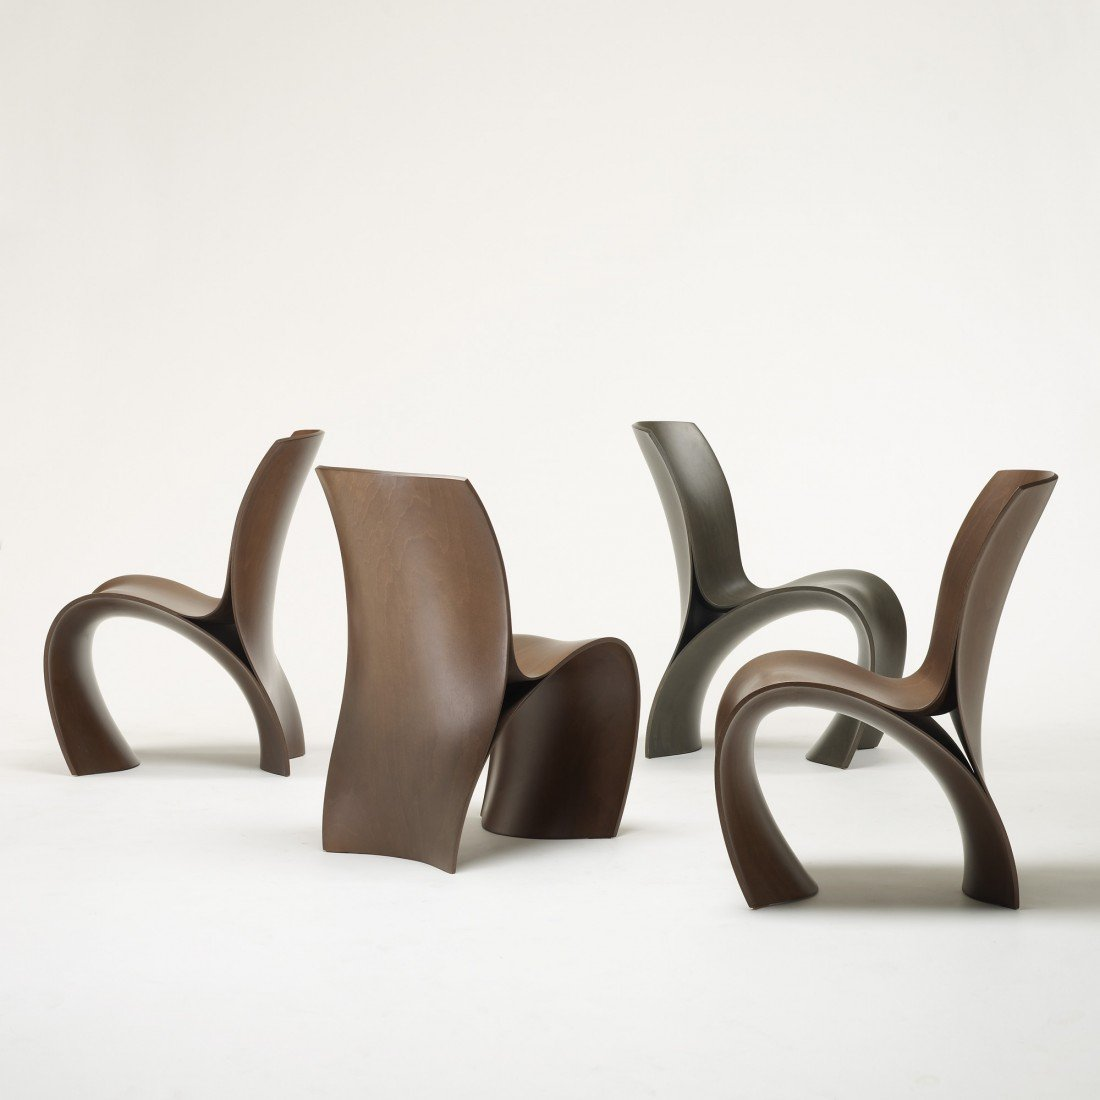 123: Ron Arad Three Skin chairs, set of four